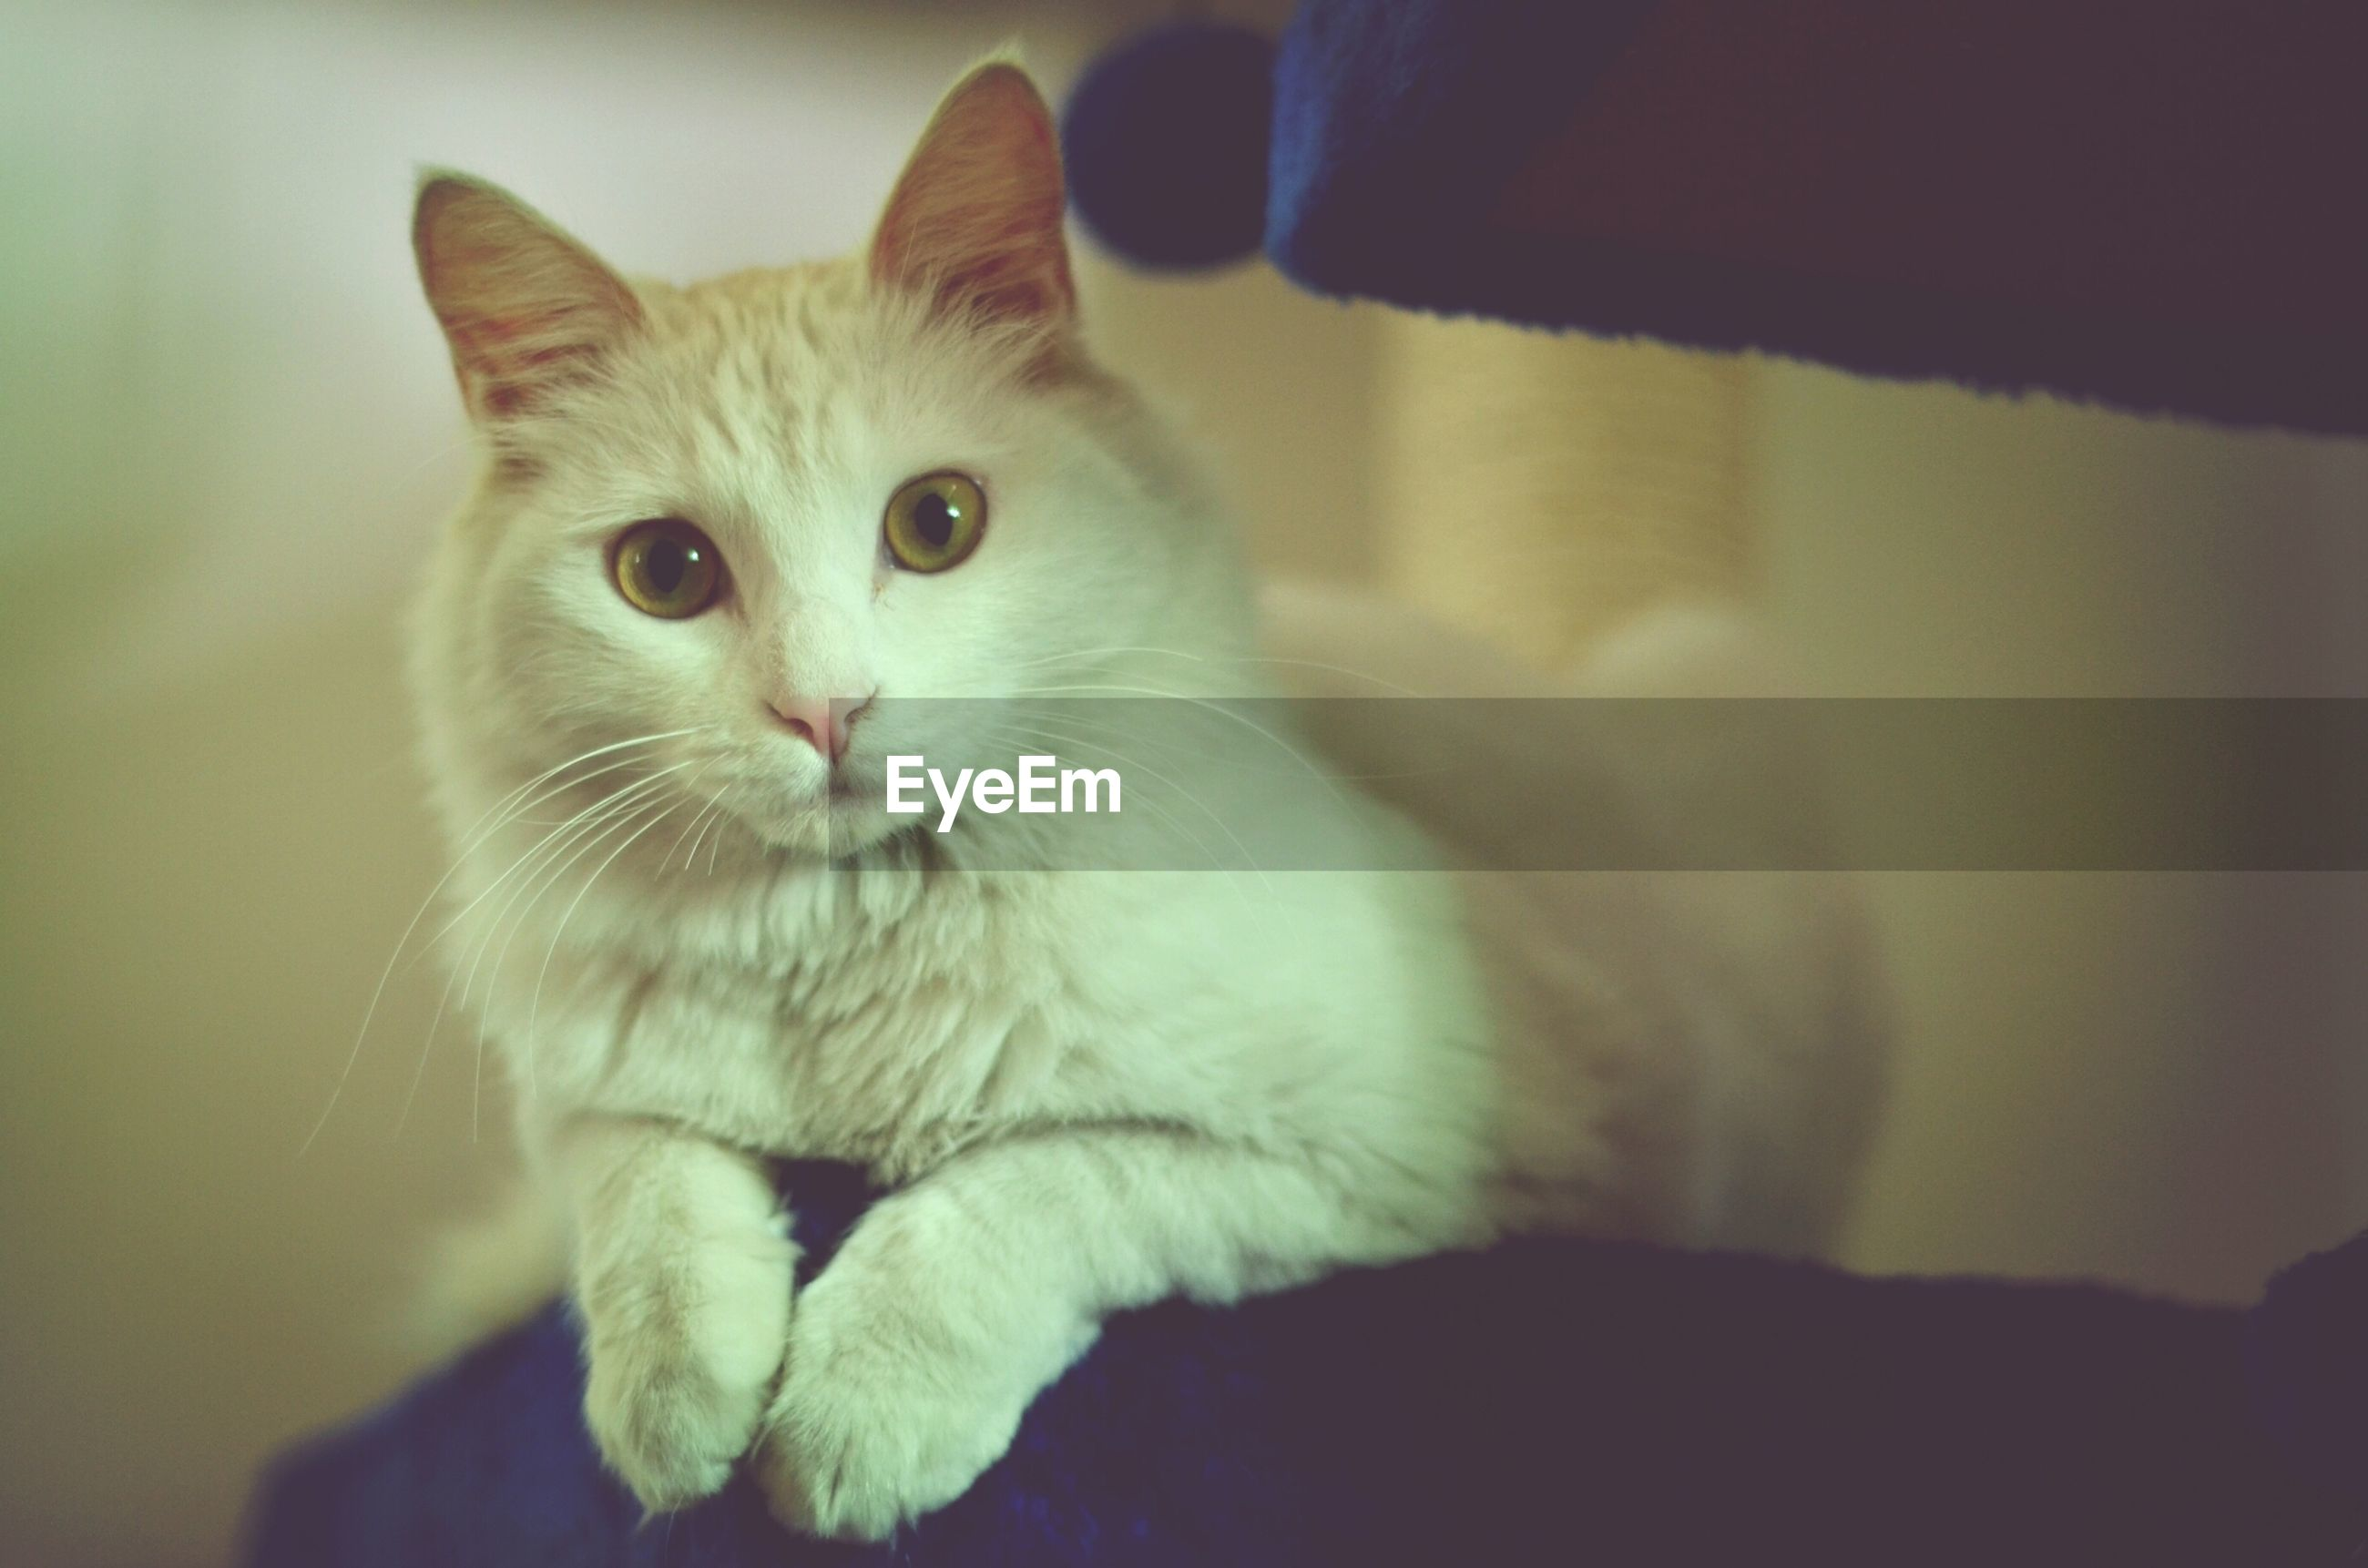 domestic cat, pets, one animal, animal themes, cat, domestic animals, mammal, feline, portrait, whisker, looking at camera, indoors, focus on foreground, close-up, alertness, sitting, staring, front view, selective focus